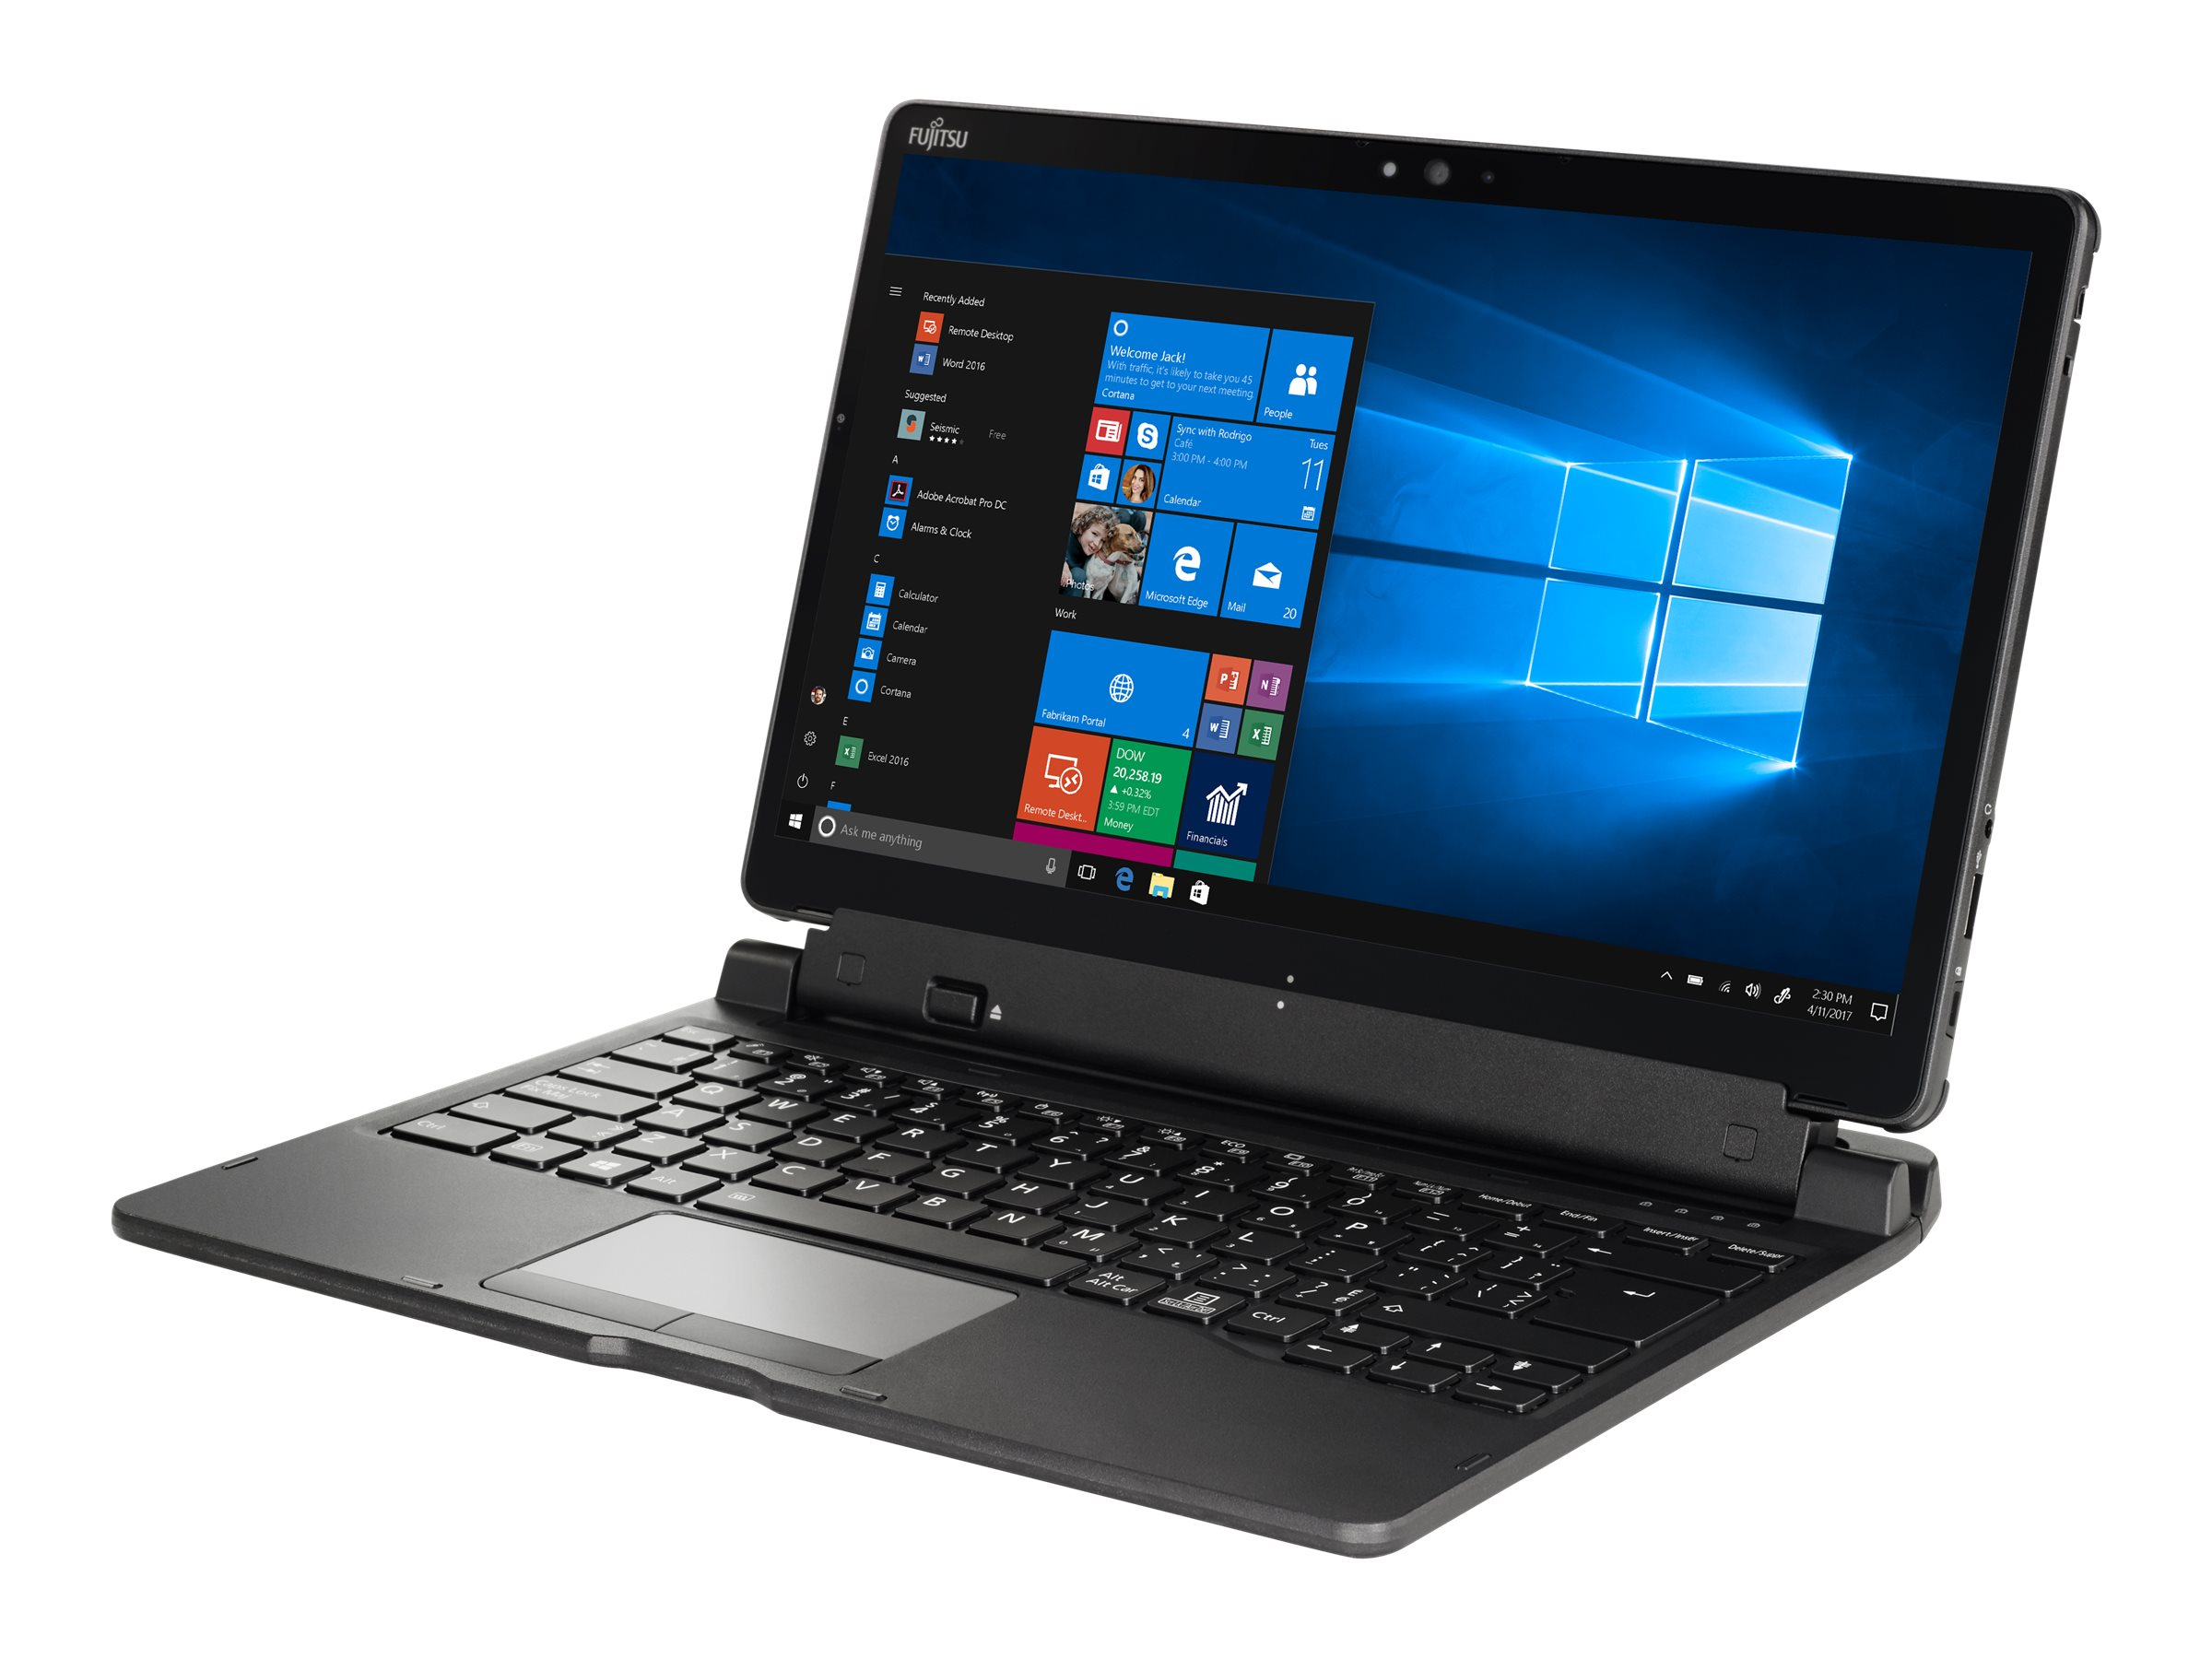 "Fujitsu Stylistic Q739 - Tablet - Core i5 8265U / 1.6 GHz - Win 10 Pro - 8 GB RAM - 512 GB SSD SED, TCG Opal Encryption - 33.8 cm (13.3"")"